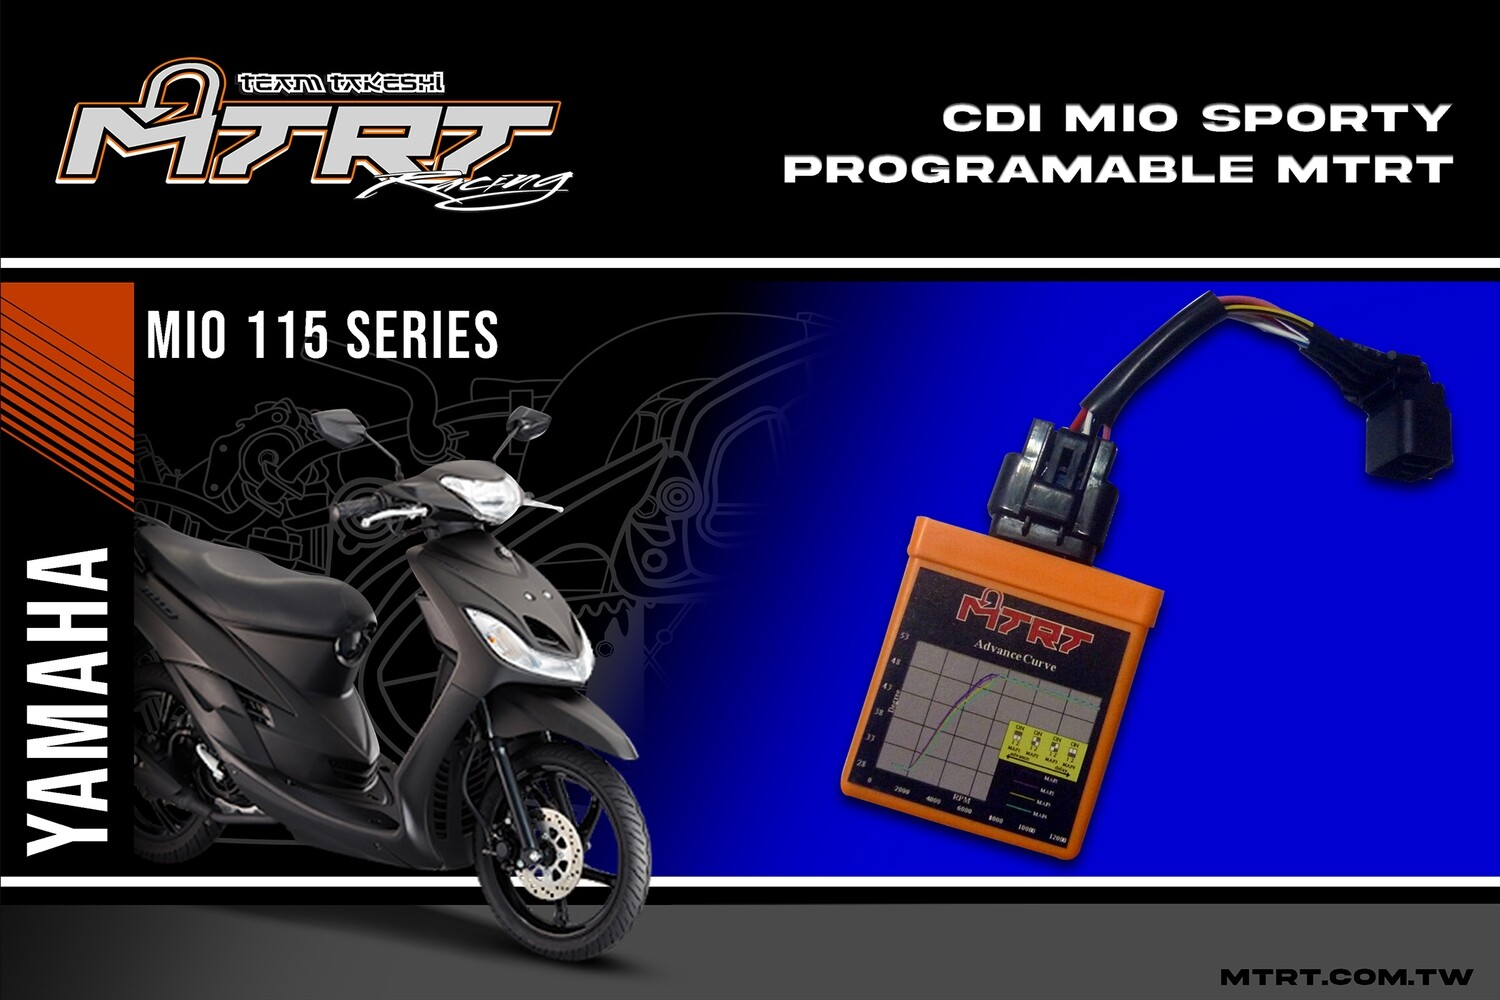 CDI MIO Sporty Programable MTRT